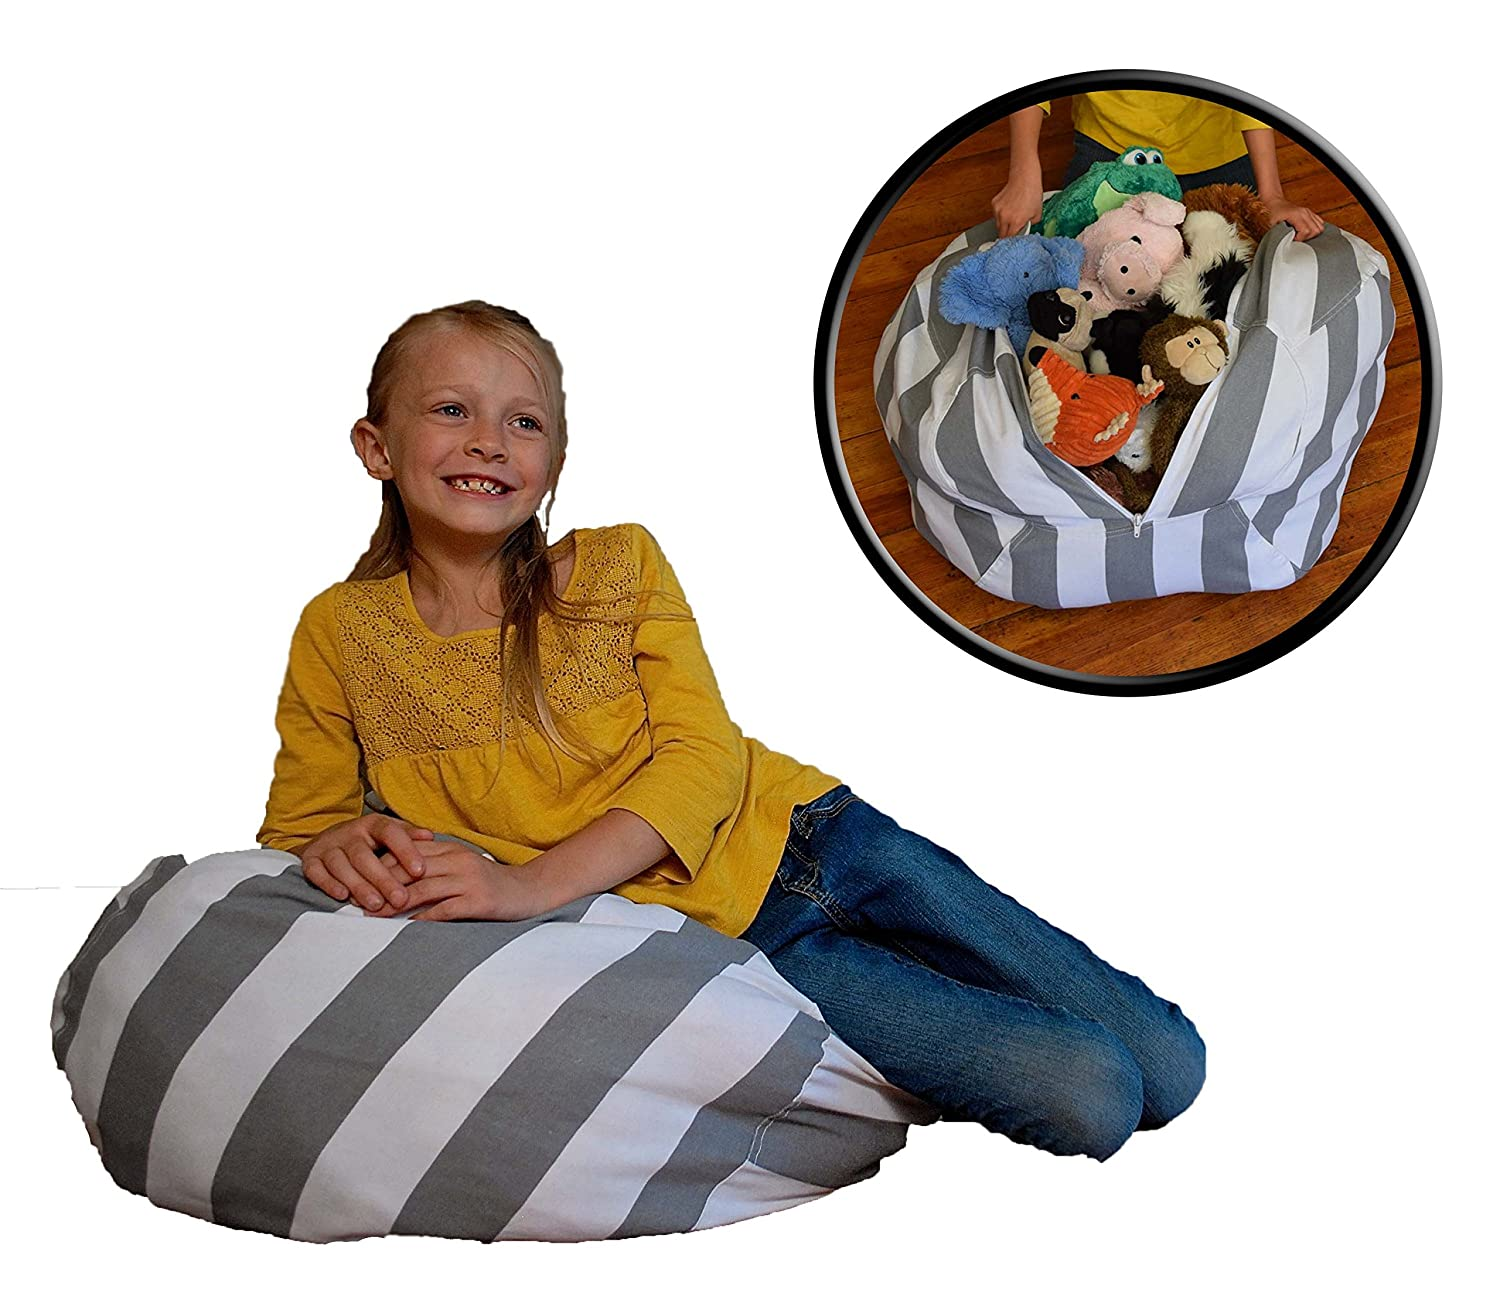 Stuffed Animal Storage Bean Bag Chair - Clean up the Room and Put Those Critters to Work for You!